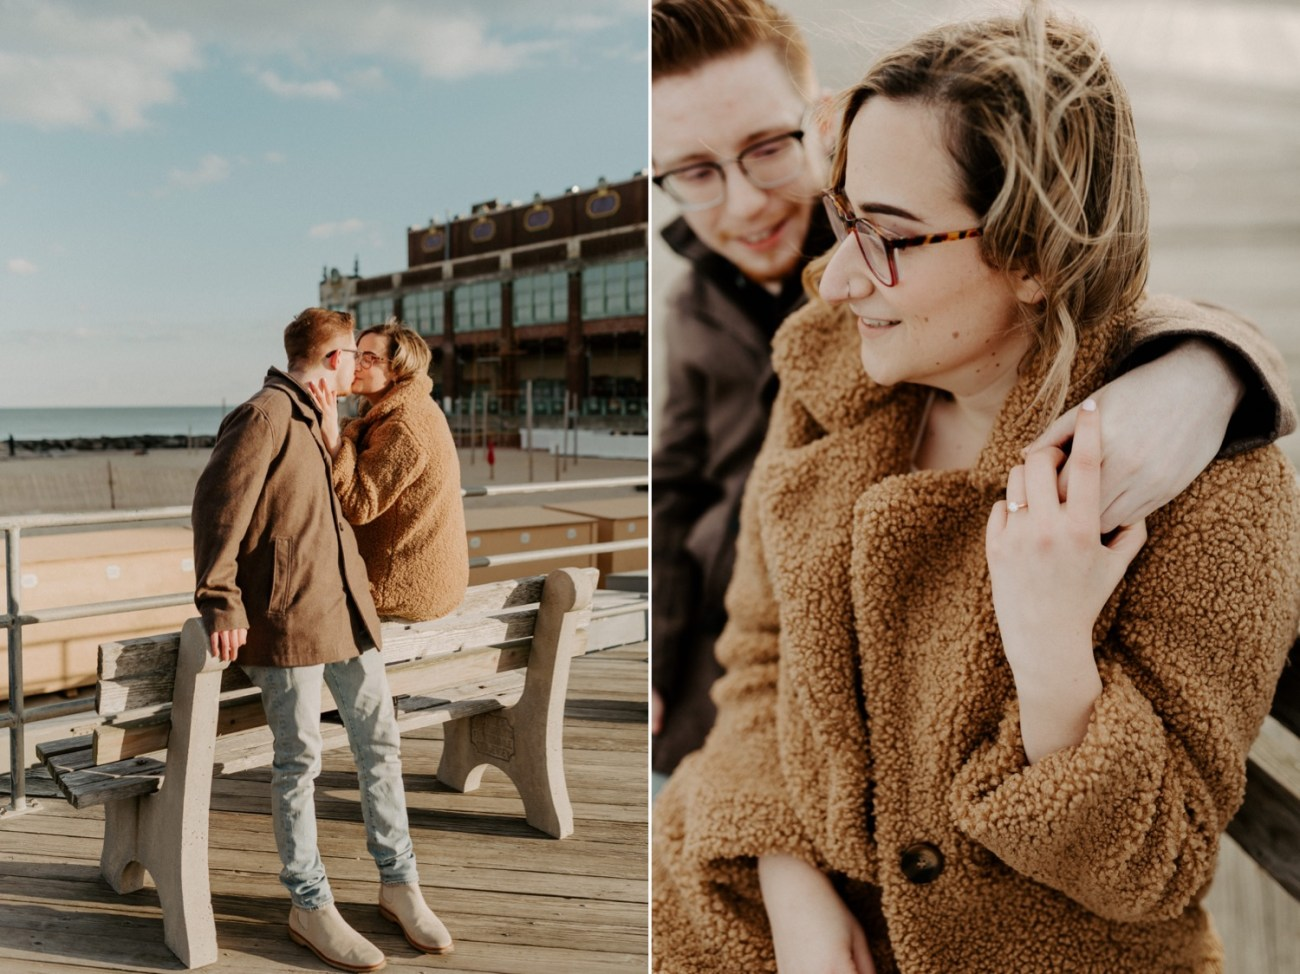 Asbury Park Engagement Photos Winter Beach Engagement Session New Jersey Wedding Photographer Anais Possamai Photography 007